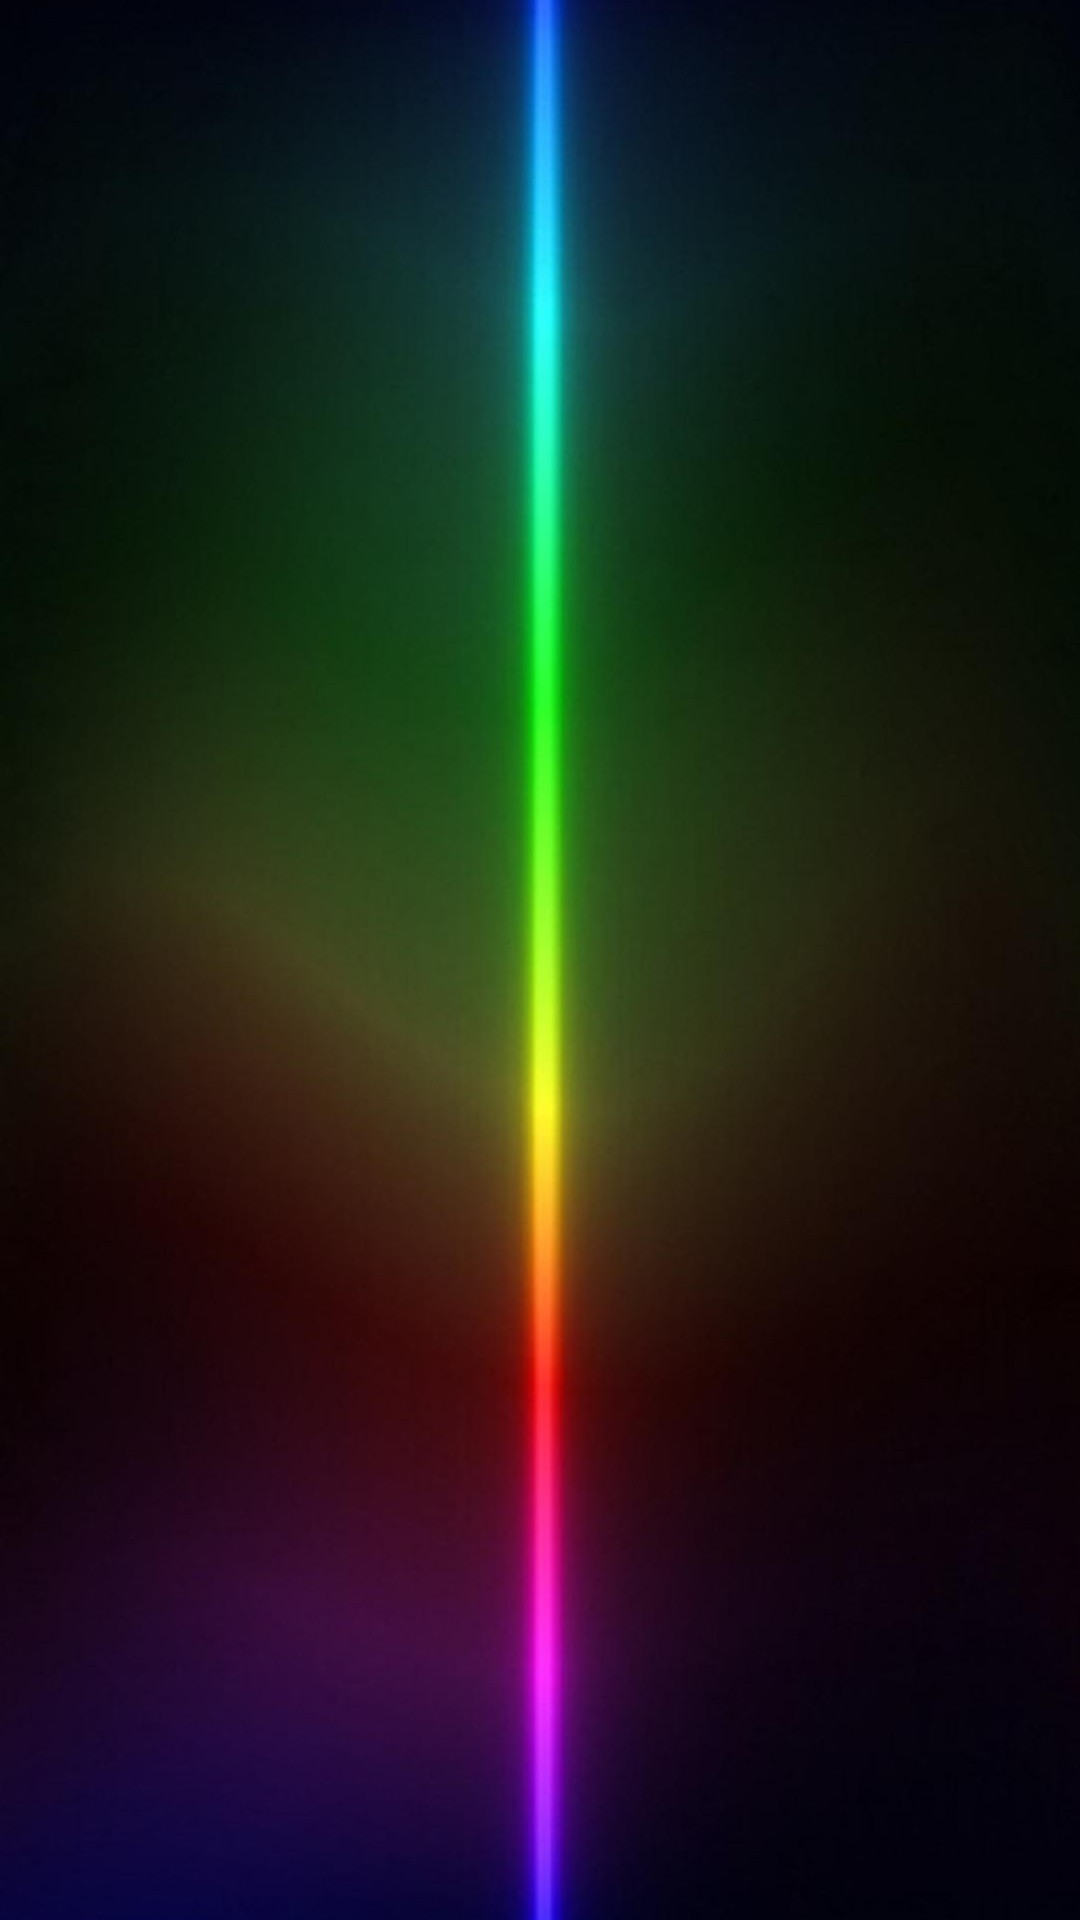 Colorful Nexus 5 Wallpapers HD 07 And Backgrounds 1080x1920